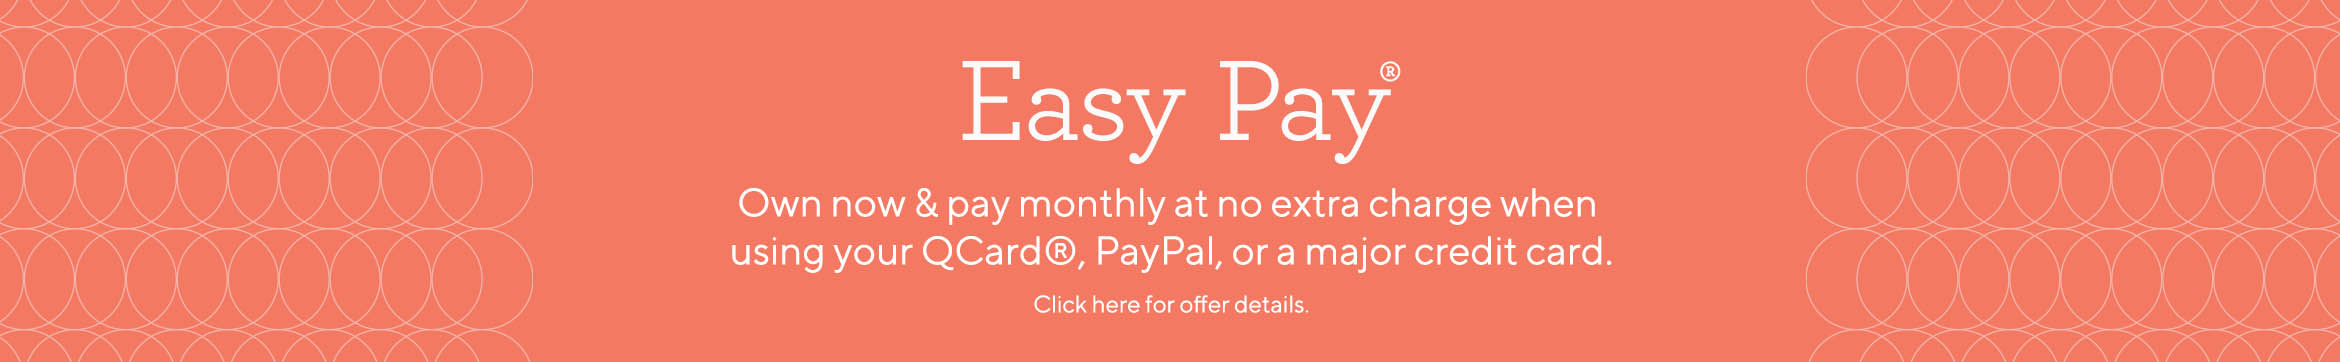 Easy Pay® Own now & pay monthly at no extra charge when using your QCard® or major credit card. Click here for Easy Pay Offer details.